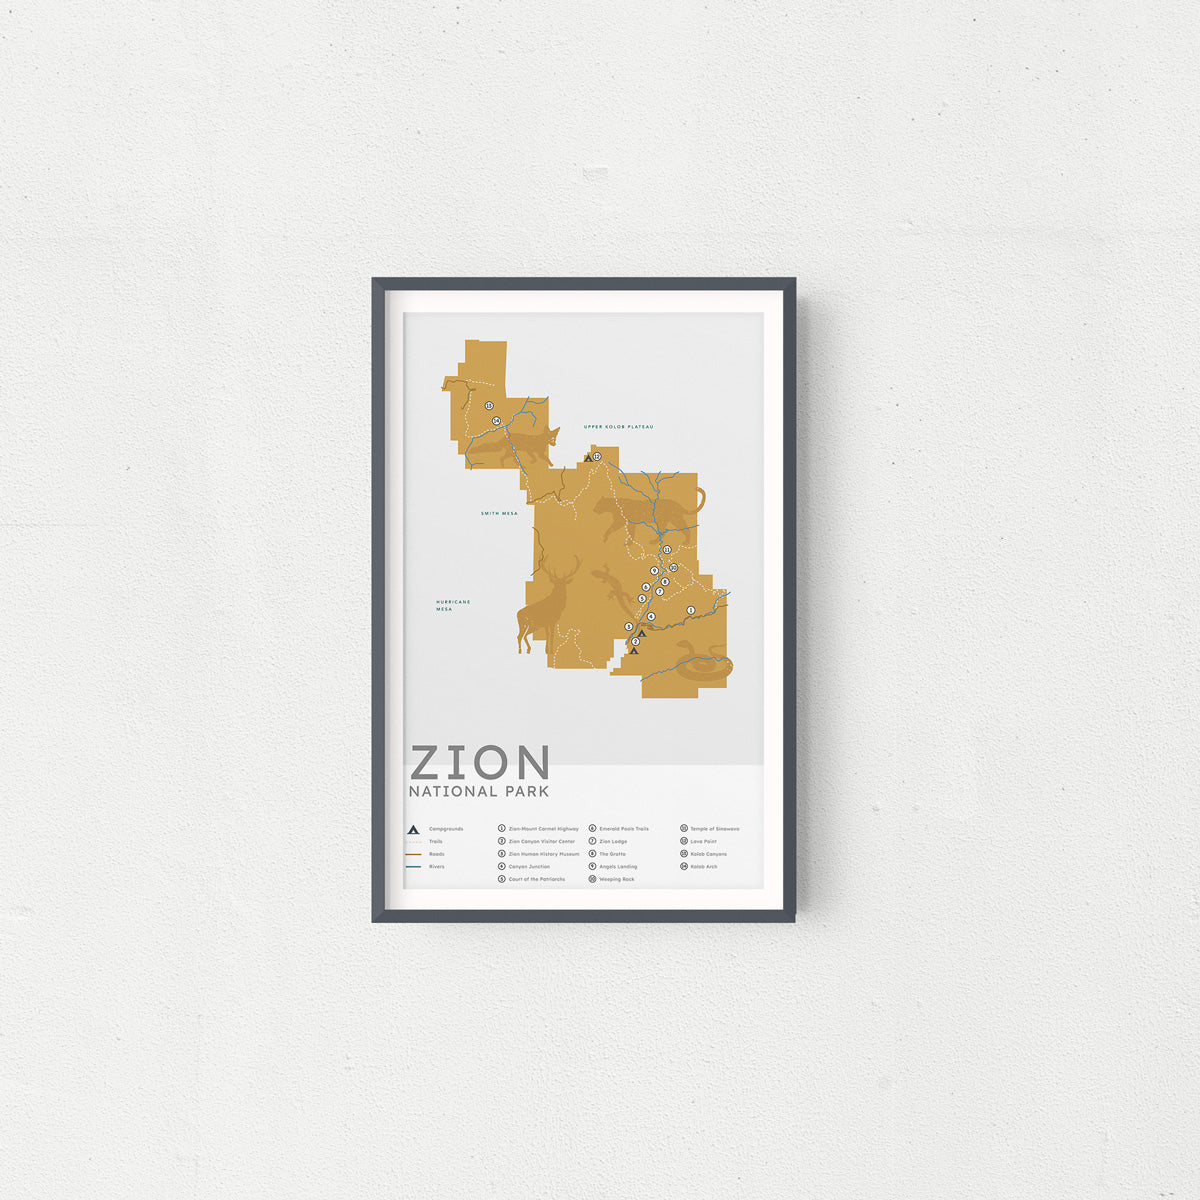 Zion National Park Map - Vintage